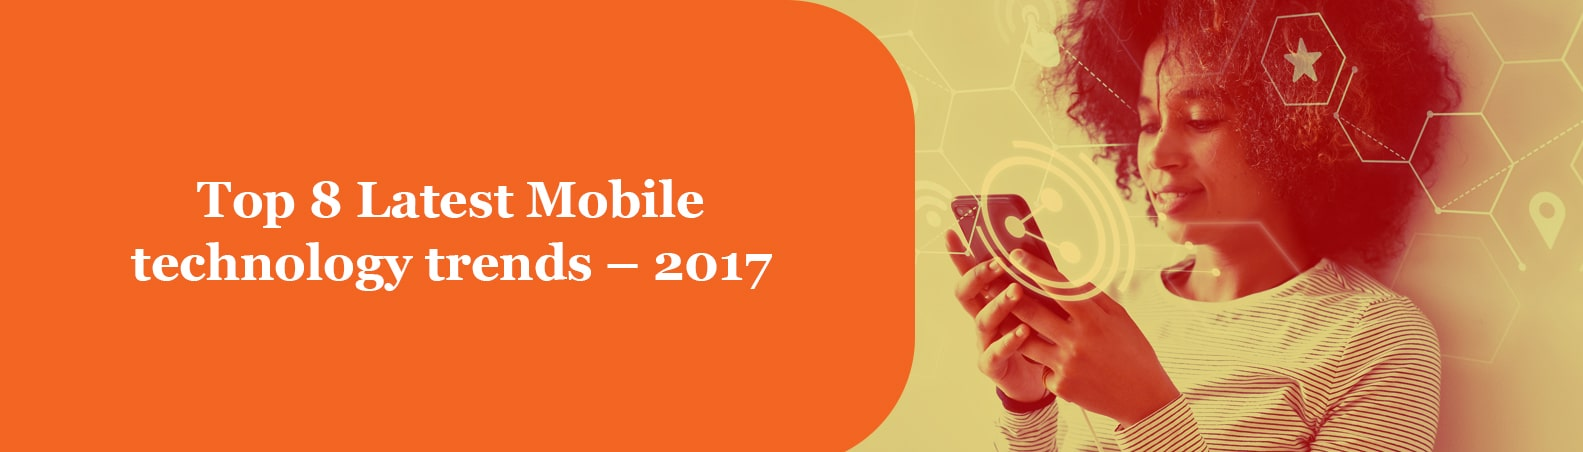 Top 8 Mobile technology trends – 2017